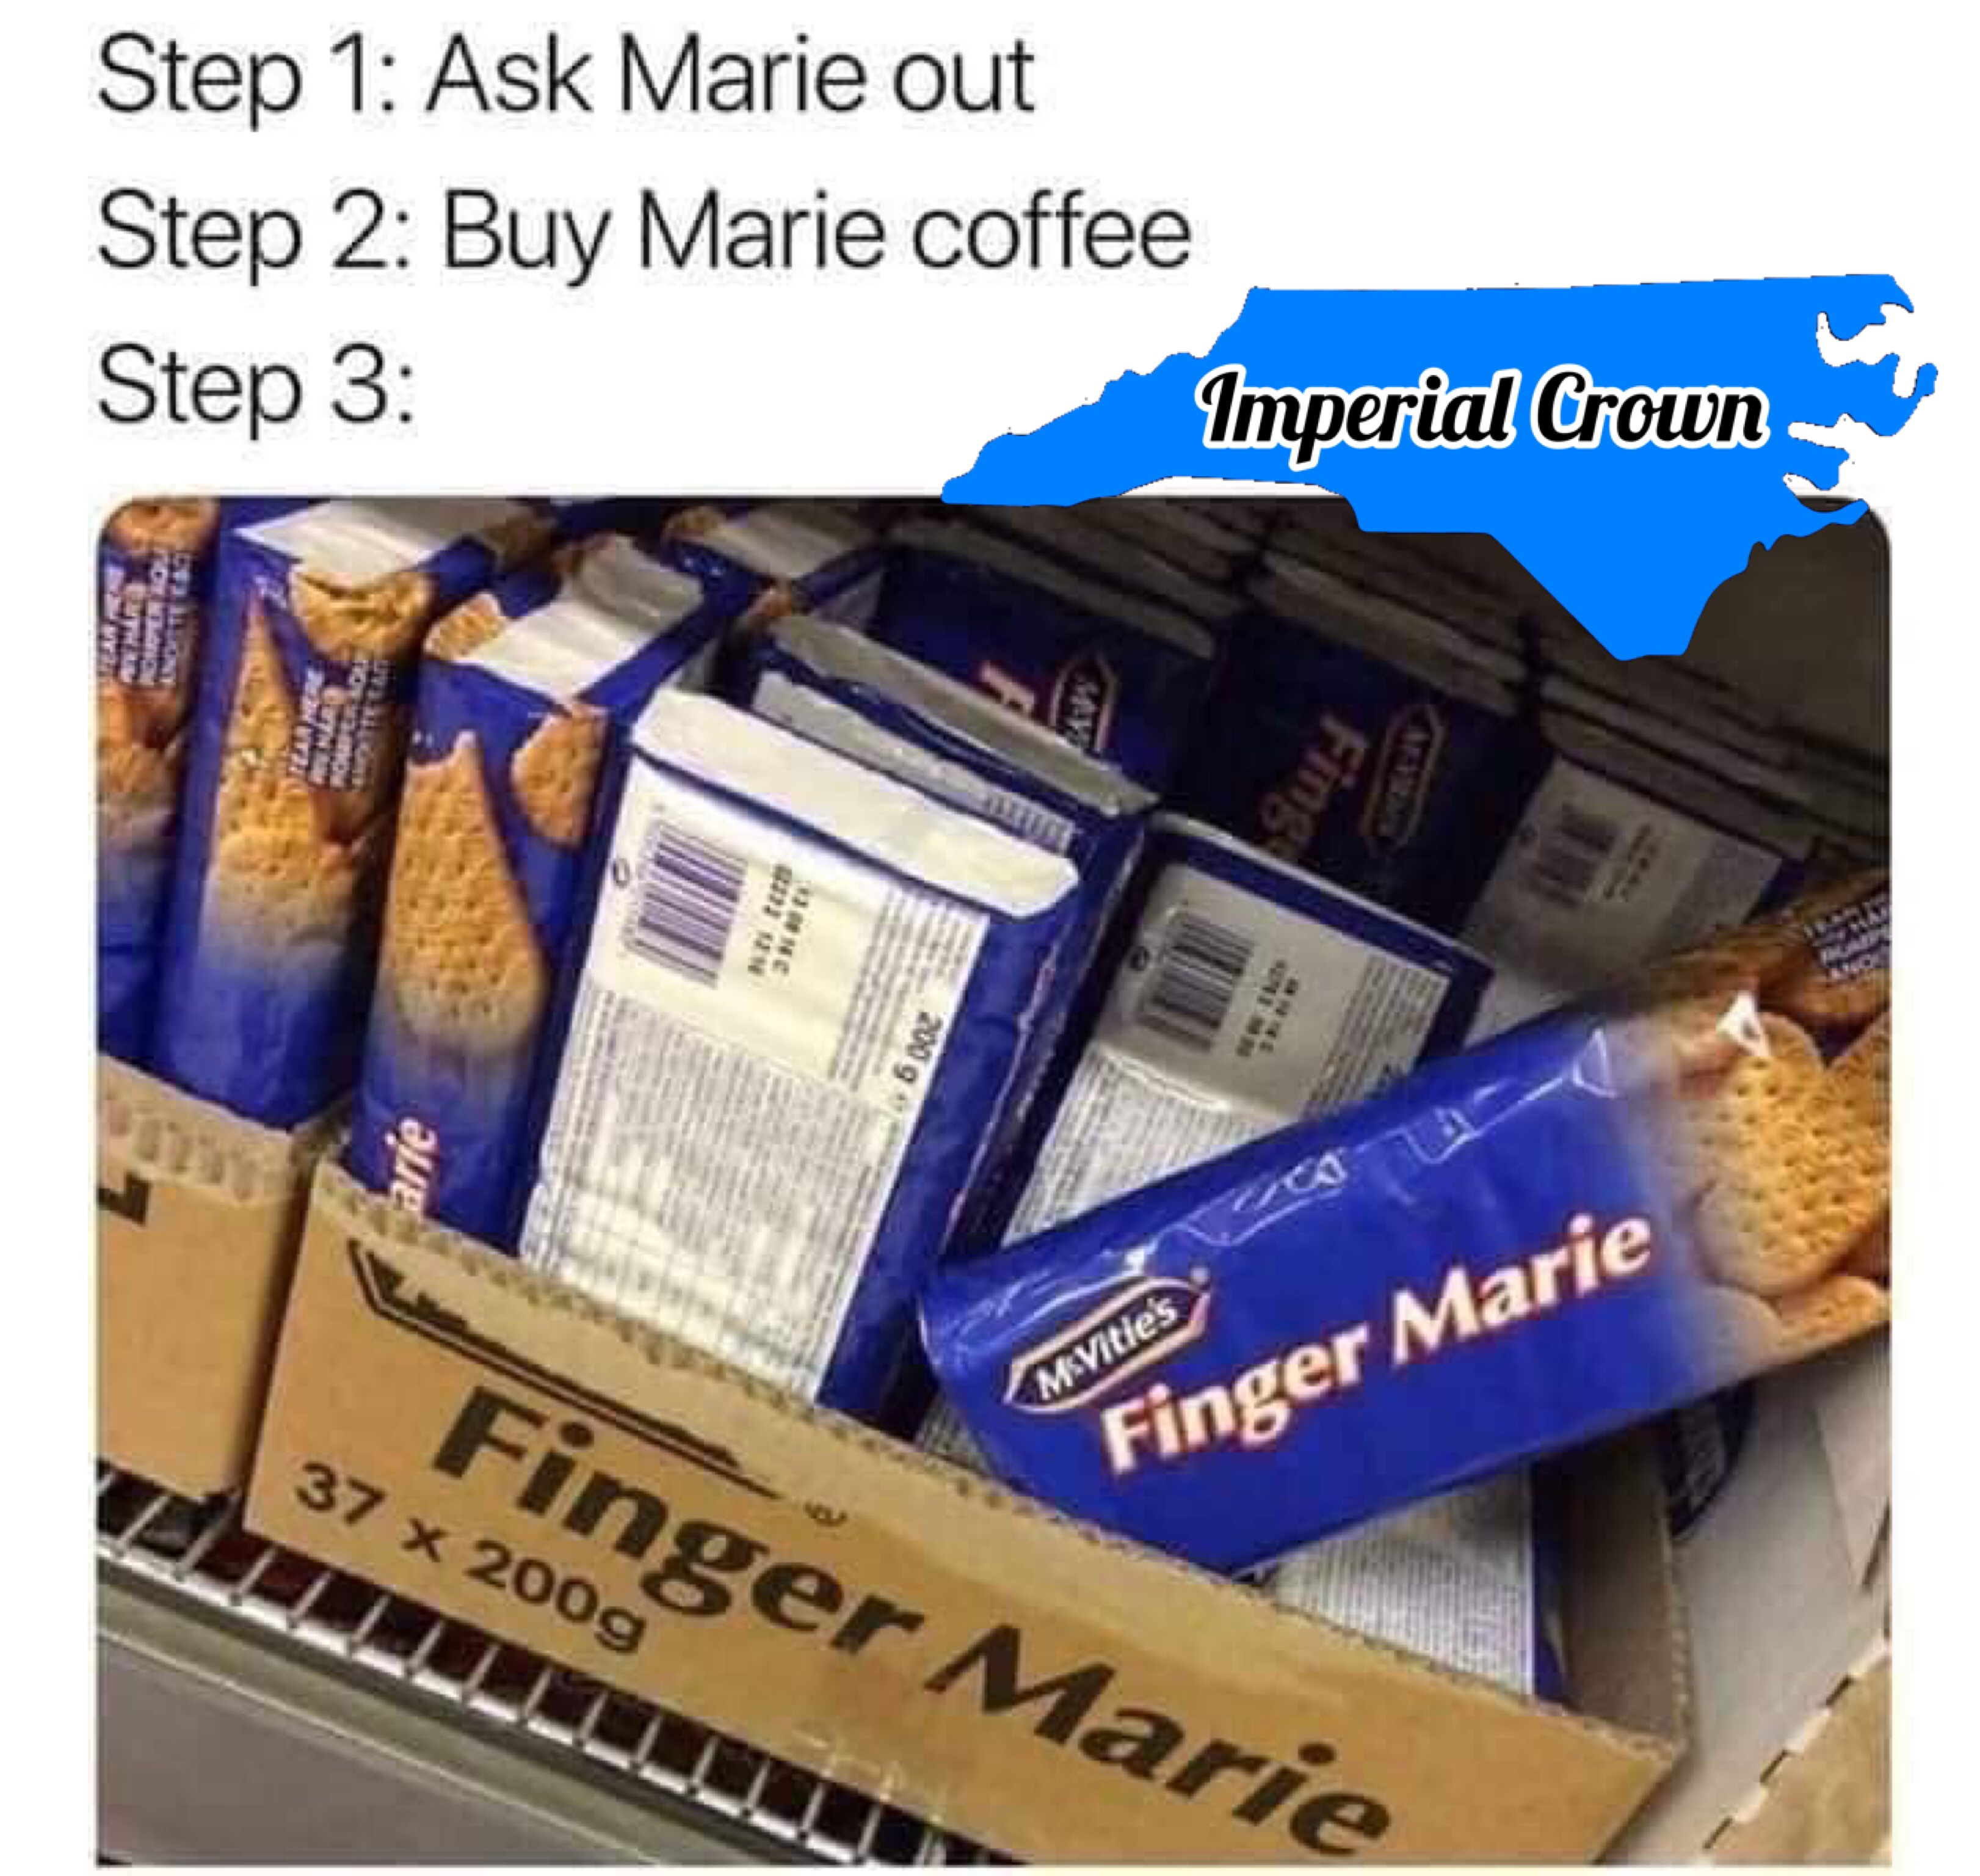 Step 1: ask Marie out